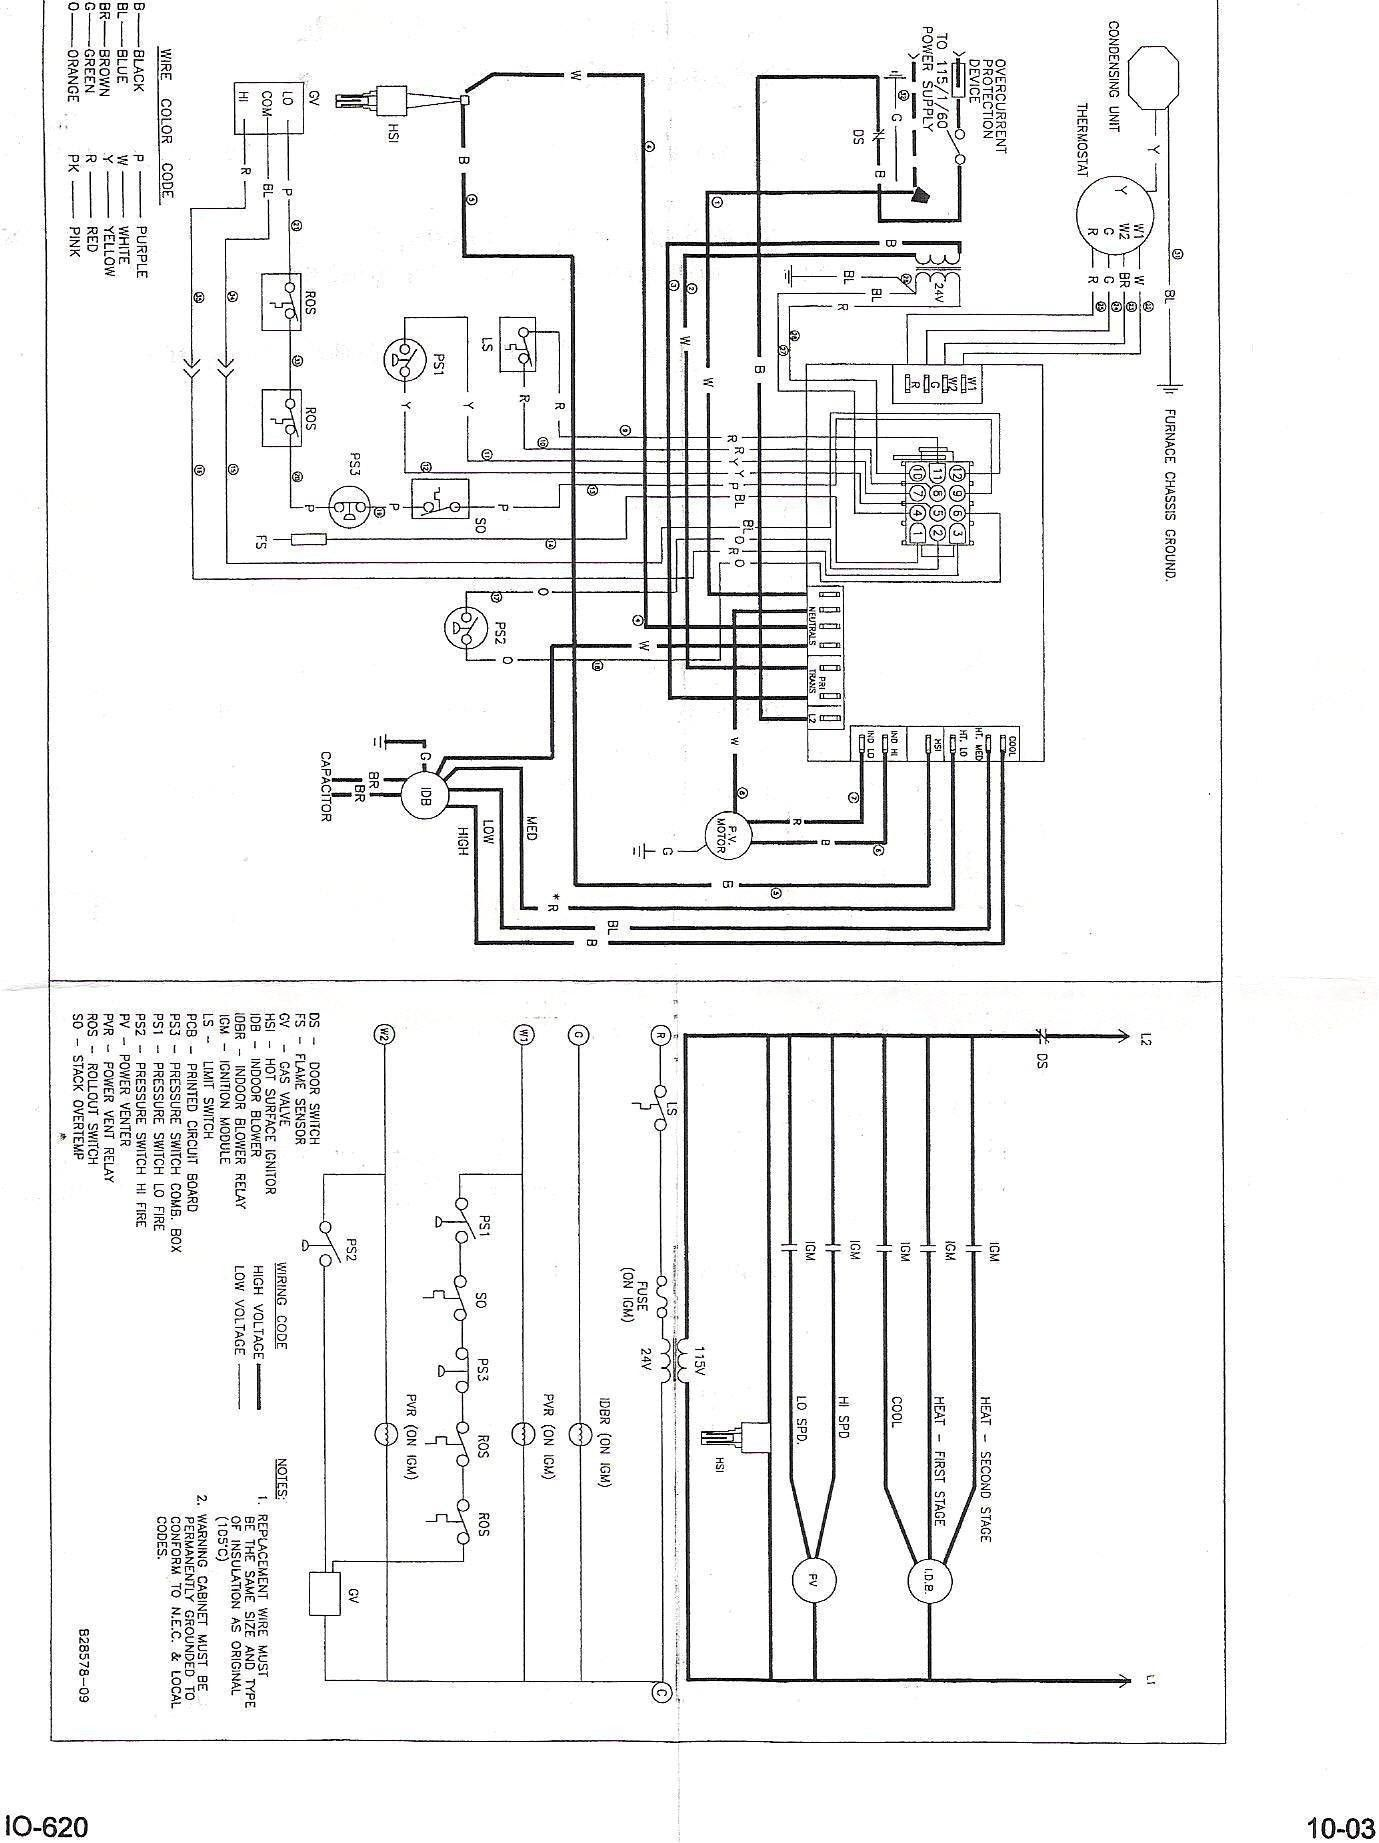 New Bryant Gas Furnace Wiring Diagram diagram